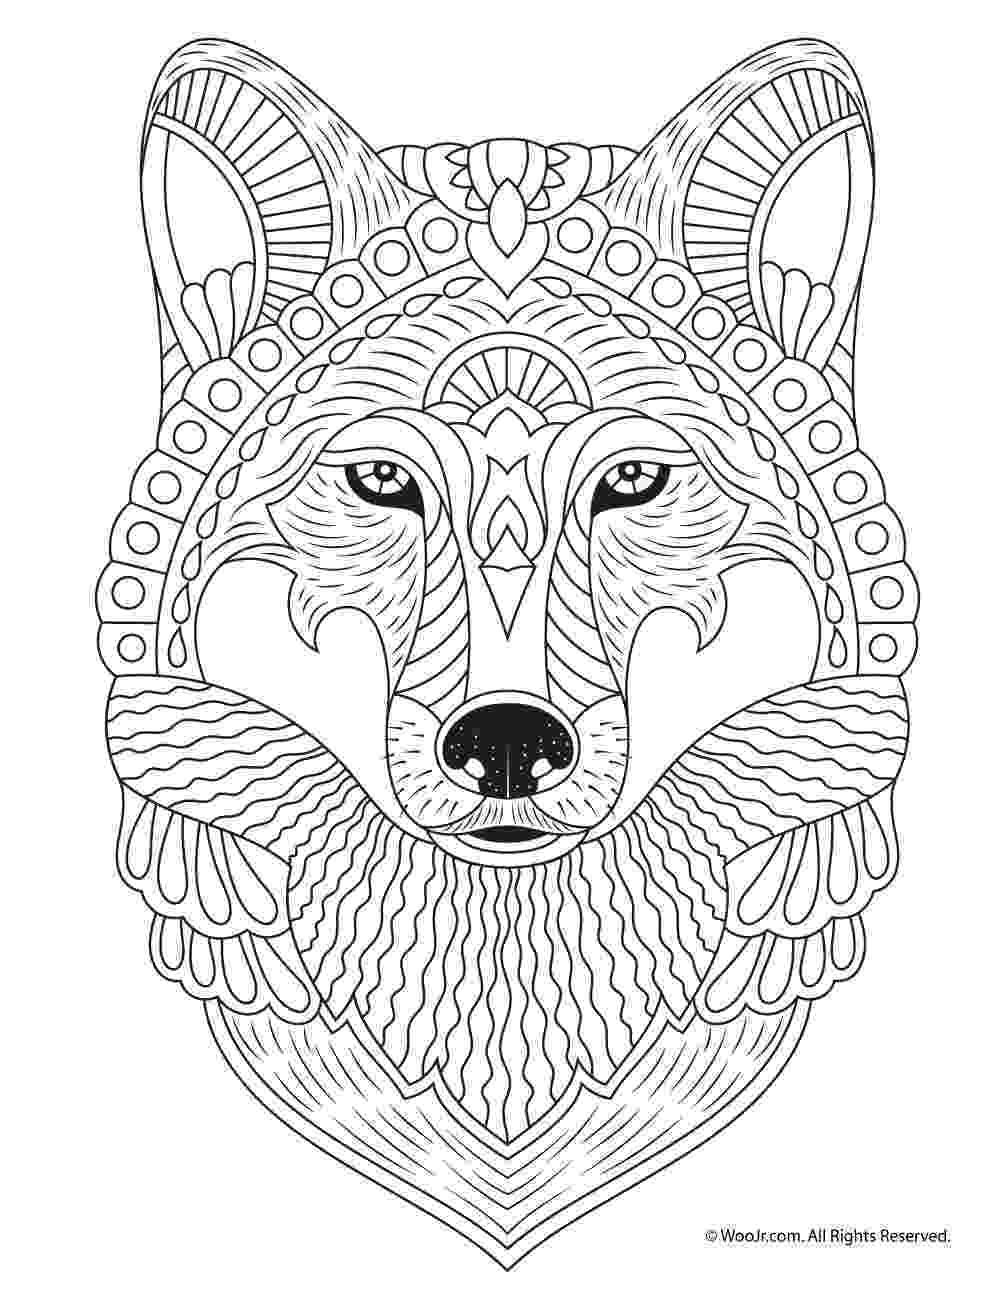 colouring pages for adults animals pages cat head animals coloring pages for adults adults colouring animals pages for